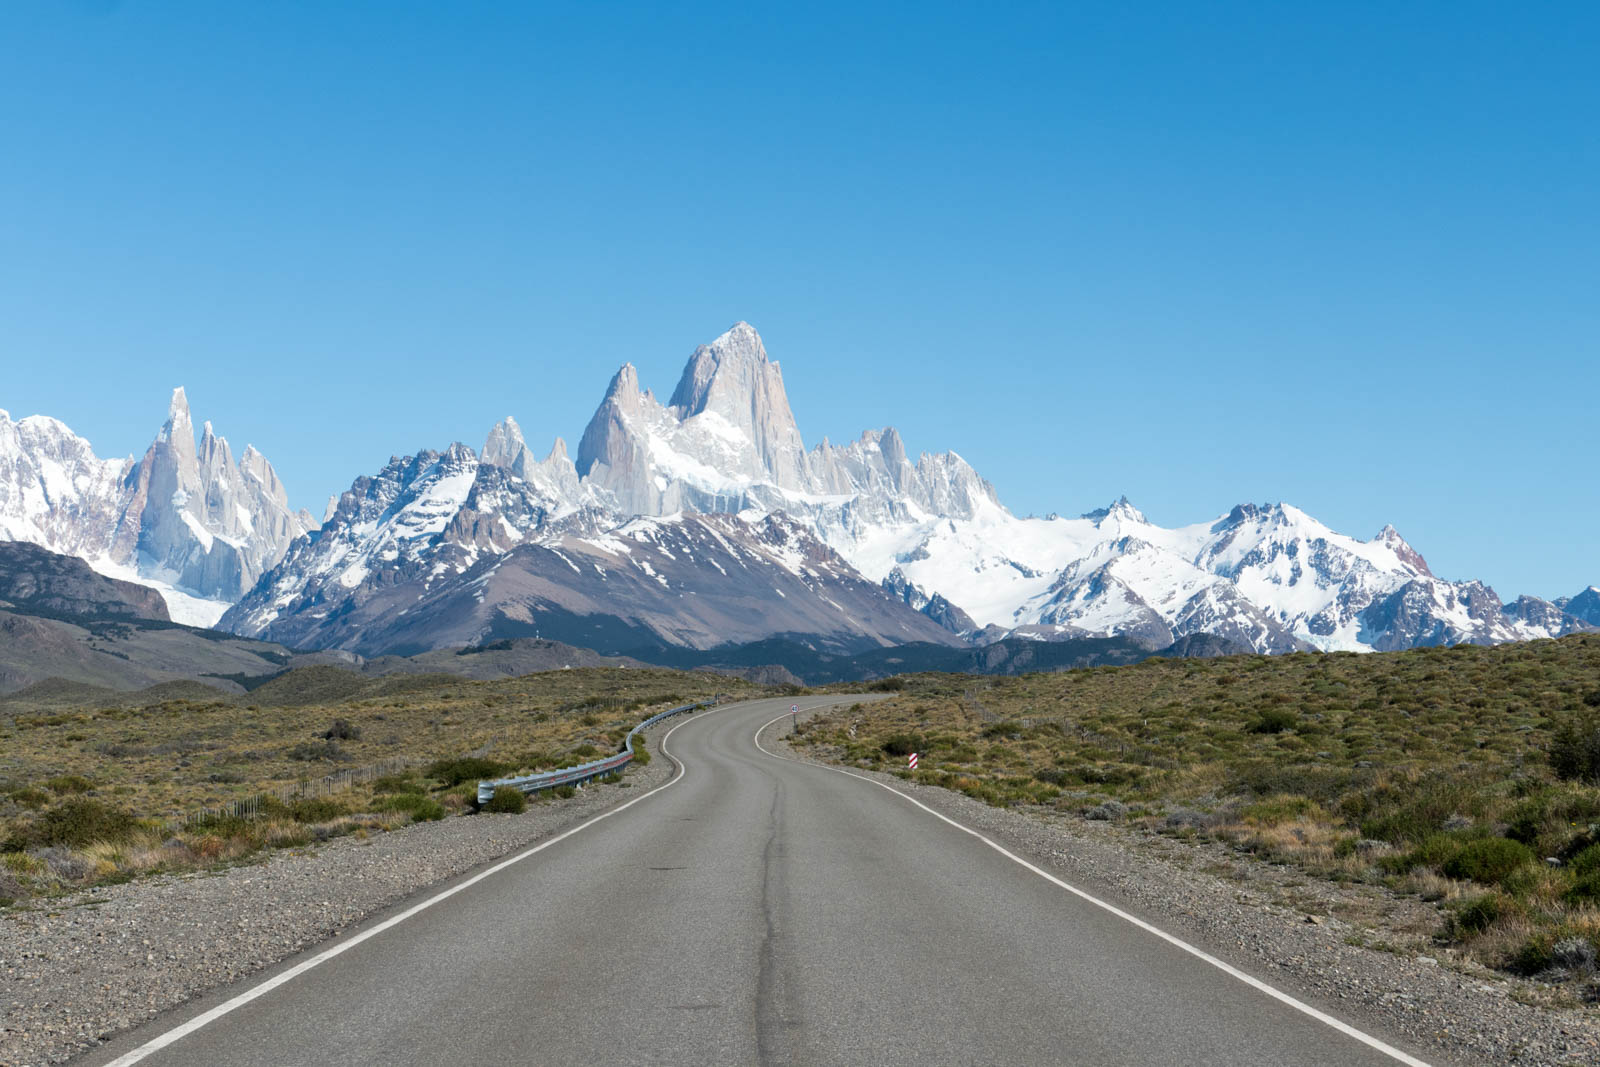 Approach to El Chalten and FitzRoy